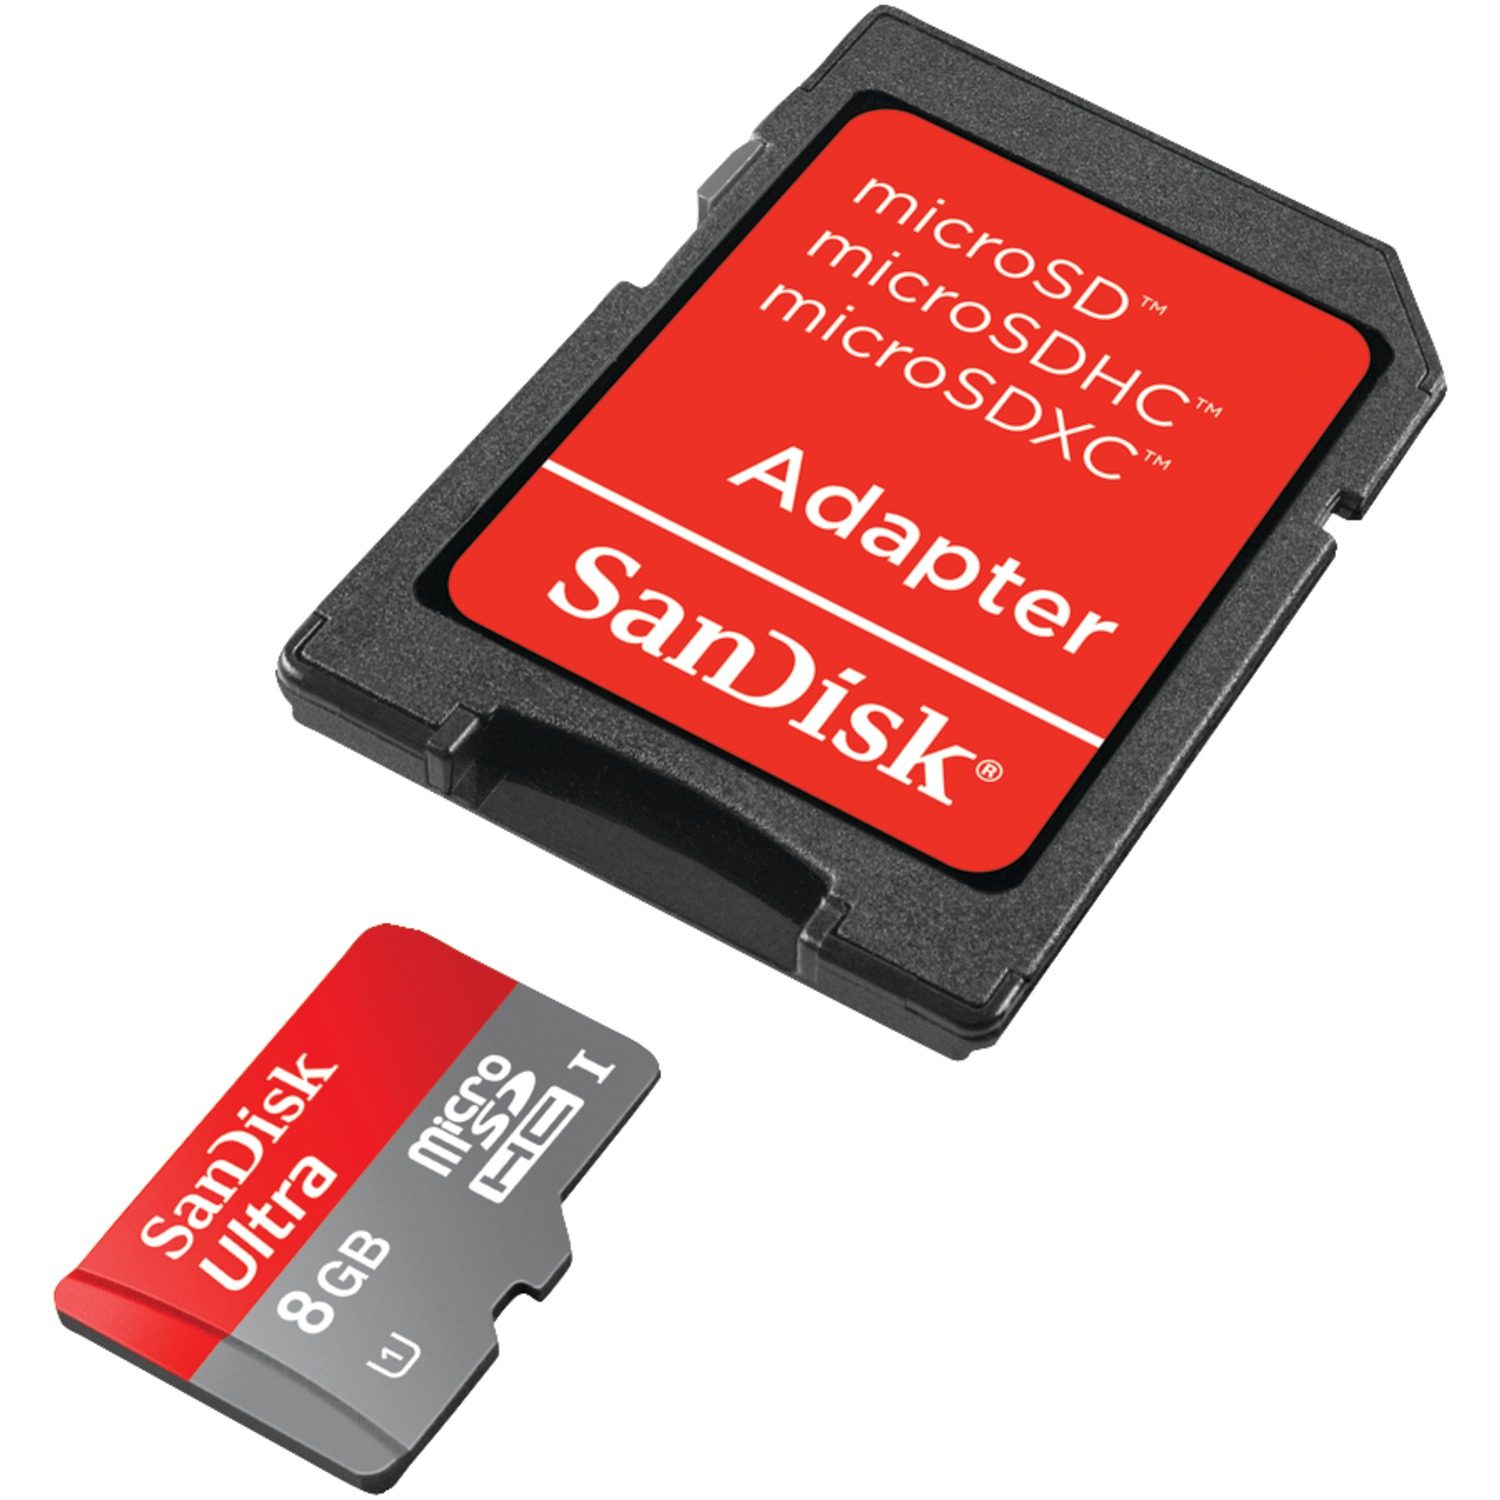 Sandisk Sdsdqua-008g-a46a 8gb Microsdhc Memory Card With Adapter